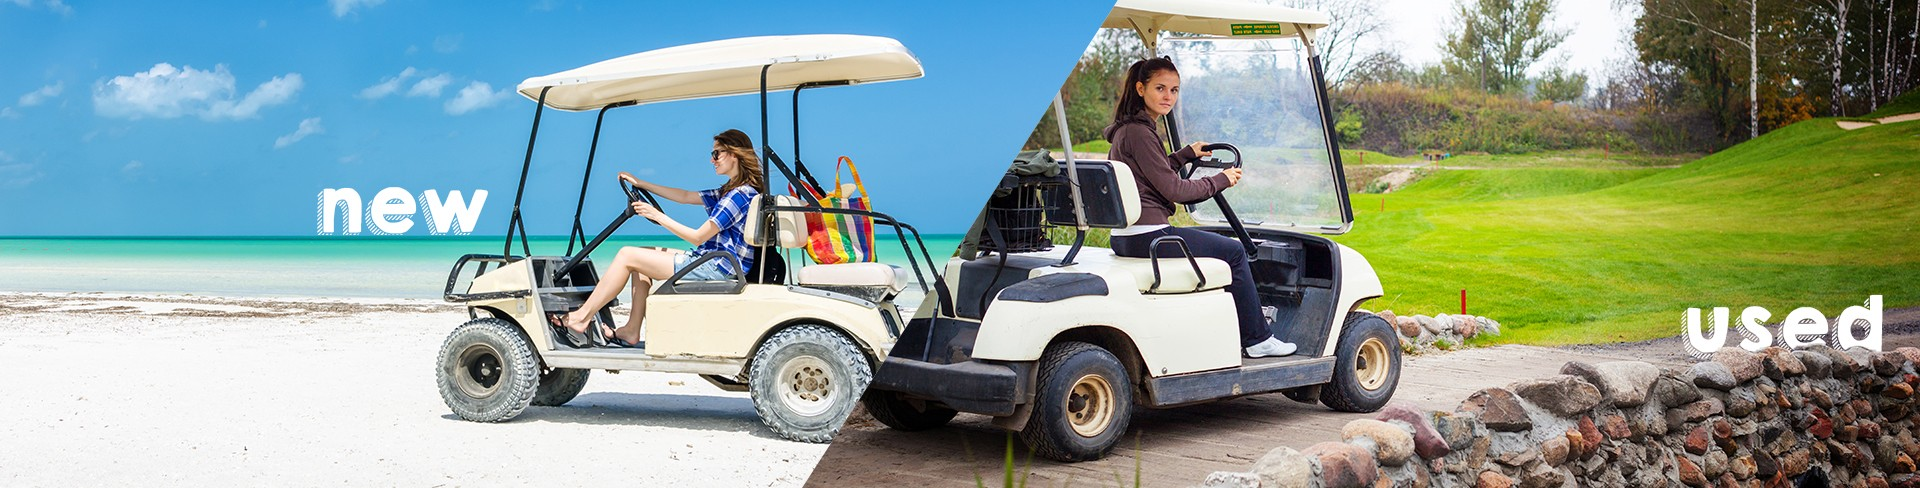 woman driving a new golf cart on the beach and woman driving used golf cart through country side